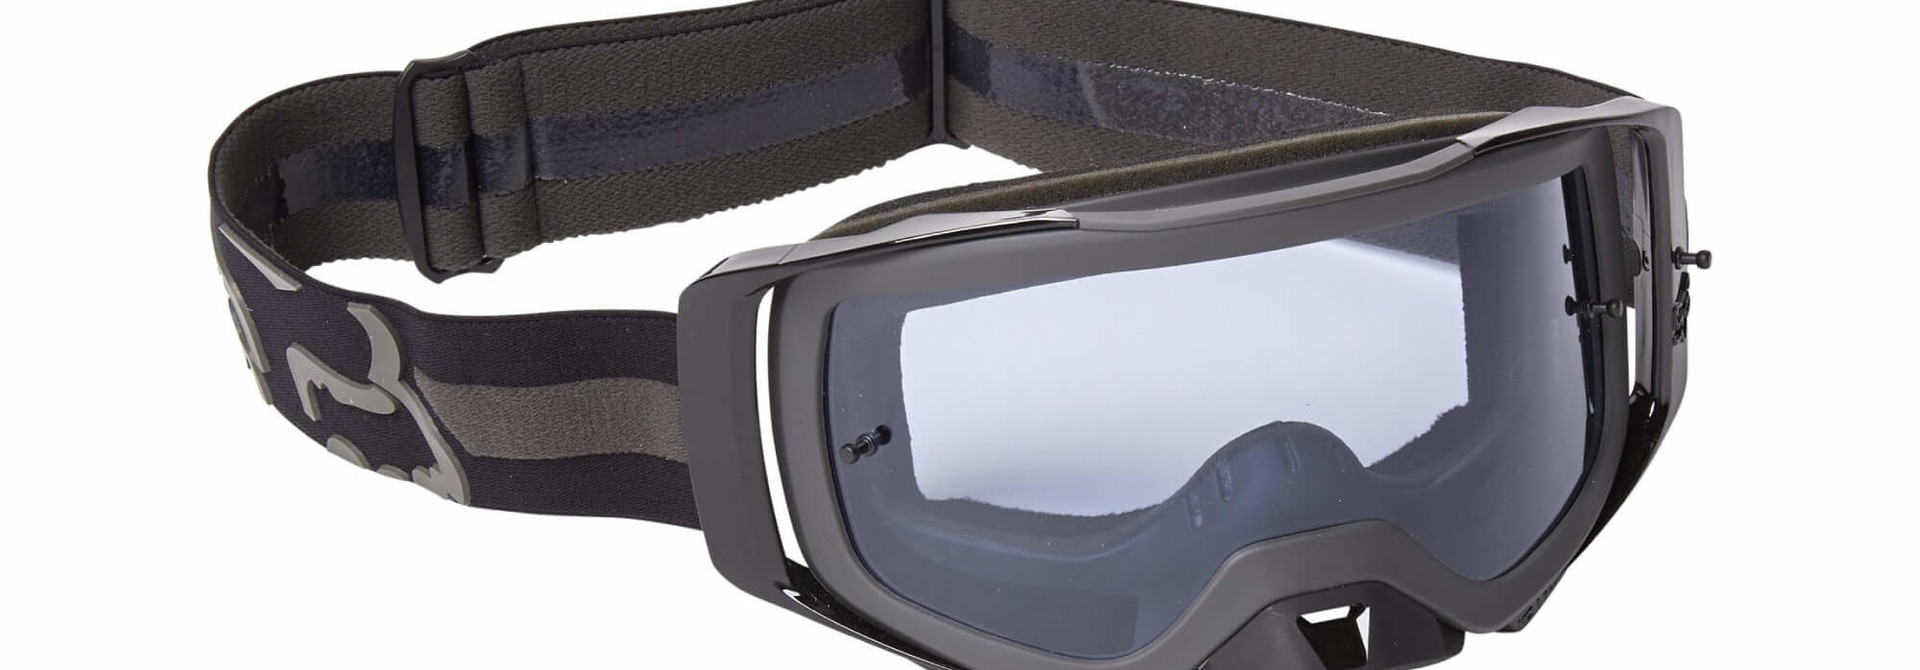 Airspace Merz Goggle 2021